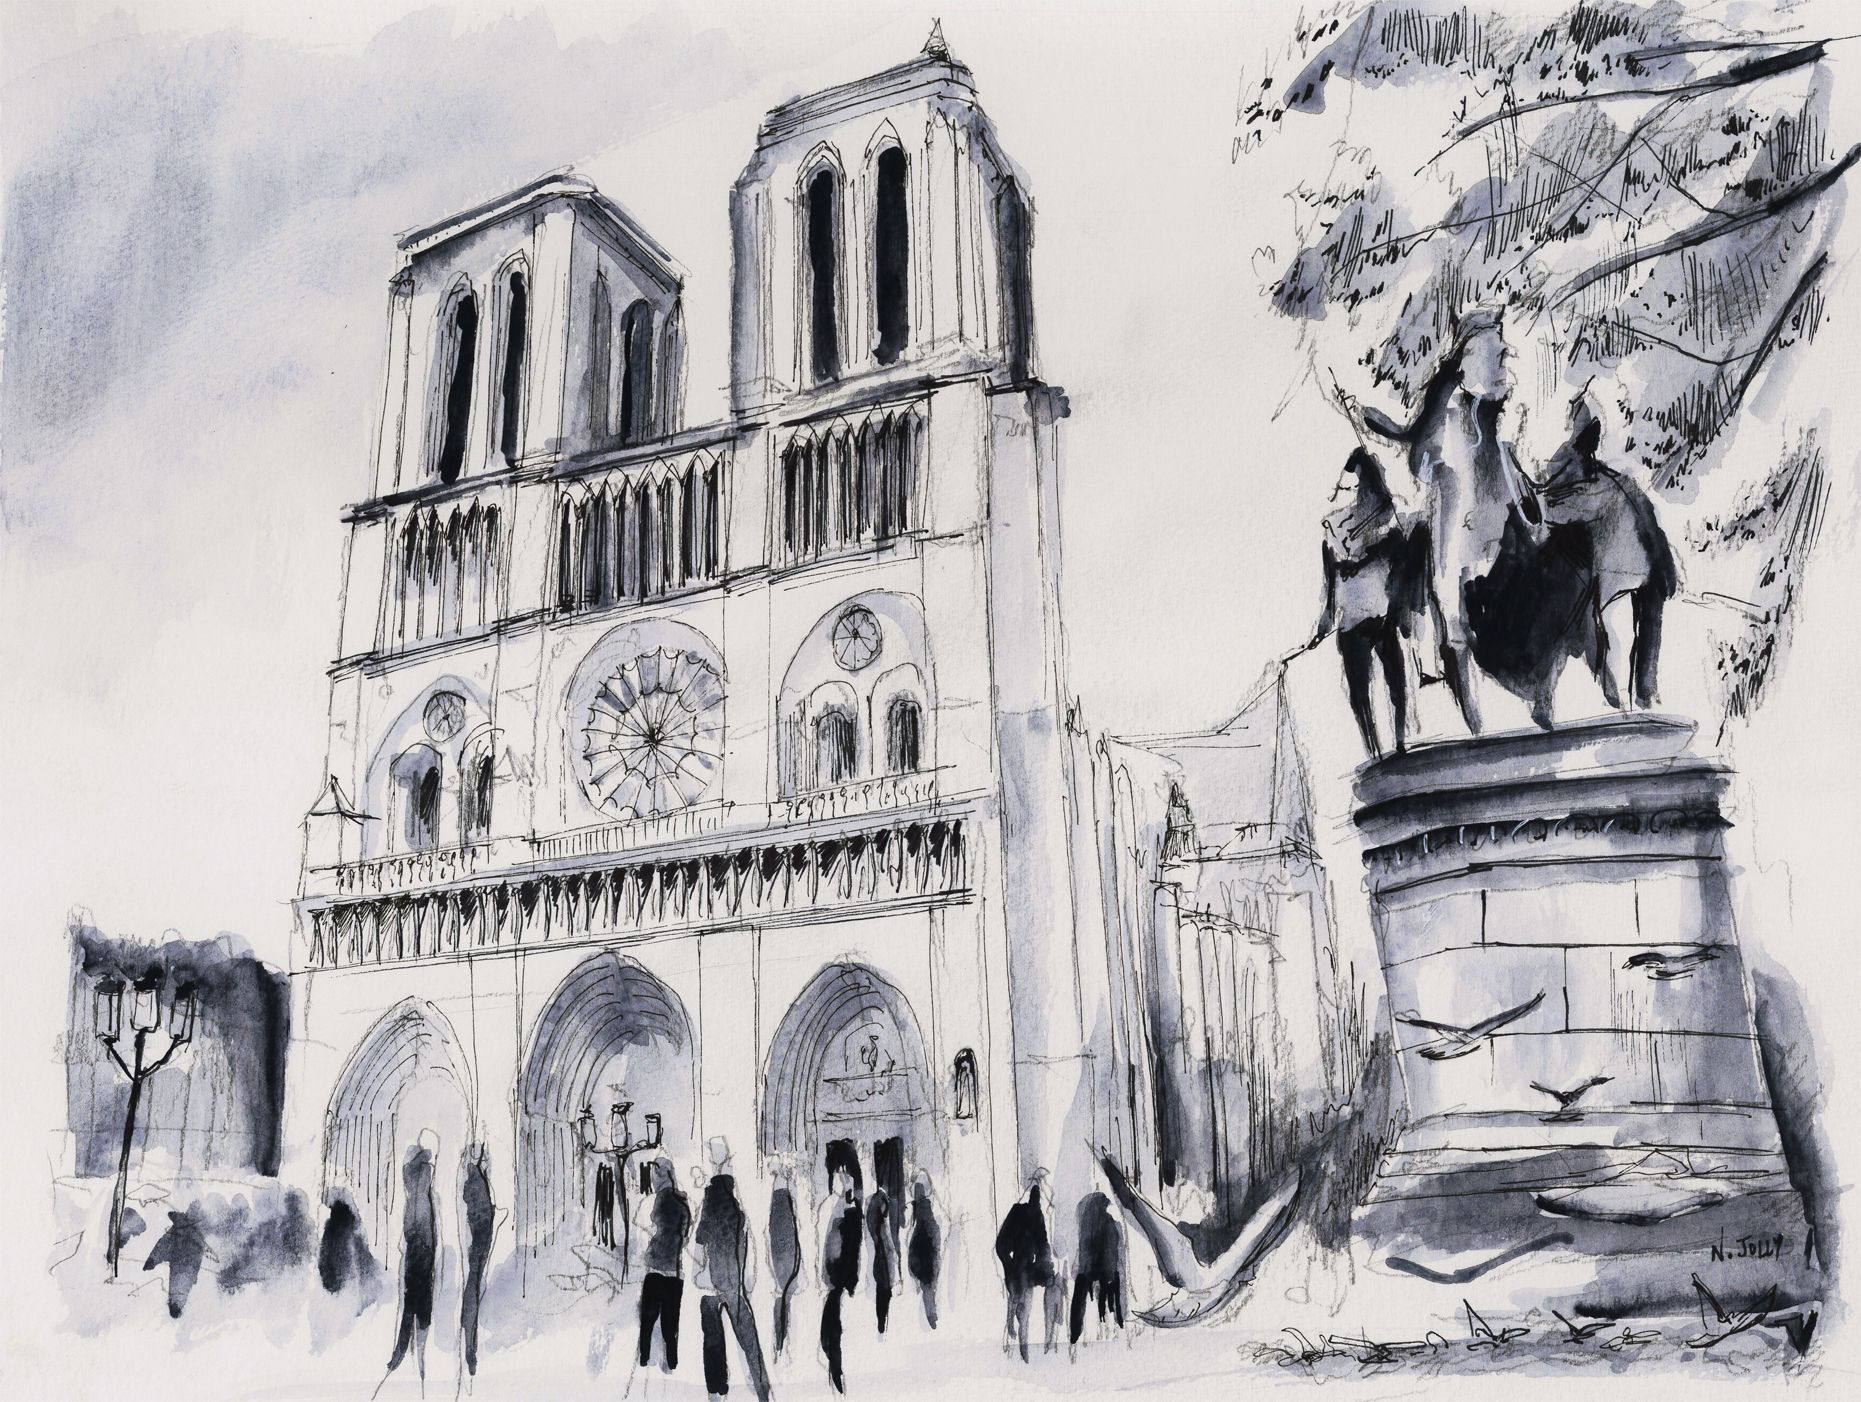 Signed Print Le Parvis De Notre Dame Paris Black Ink And Watercolor On Paper By Nicolas Jolly Paris Painting Architecture Sketch Beautiful Sketches